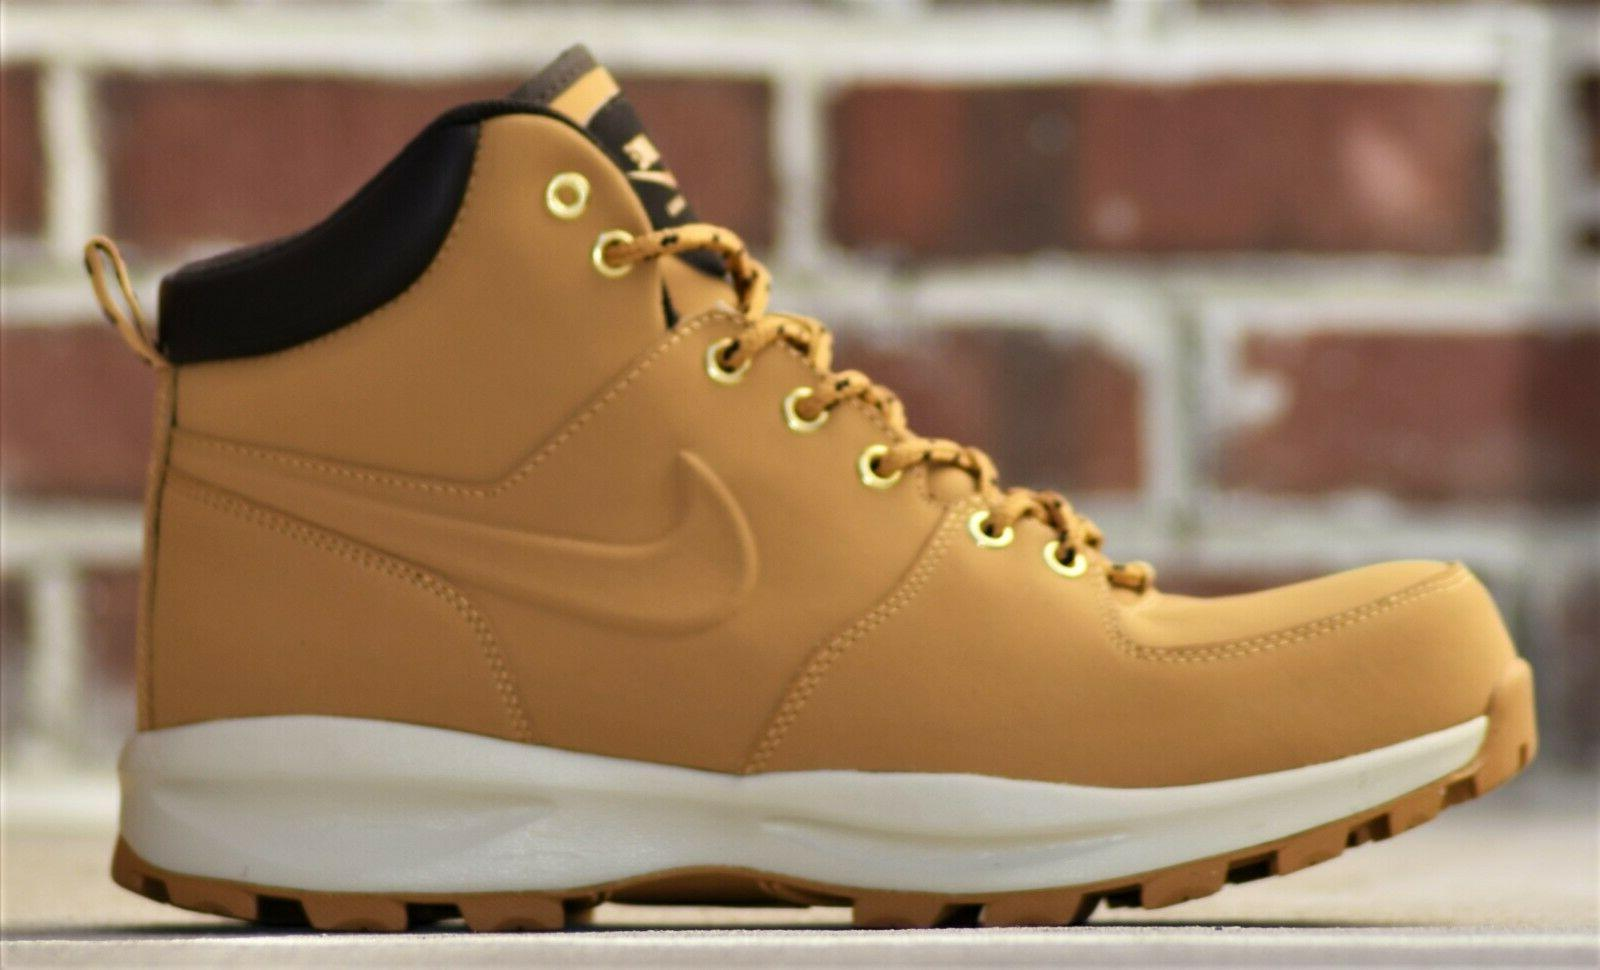 Nike Leather New Wheat Haystack Boots Winter Resistant